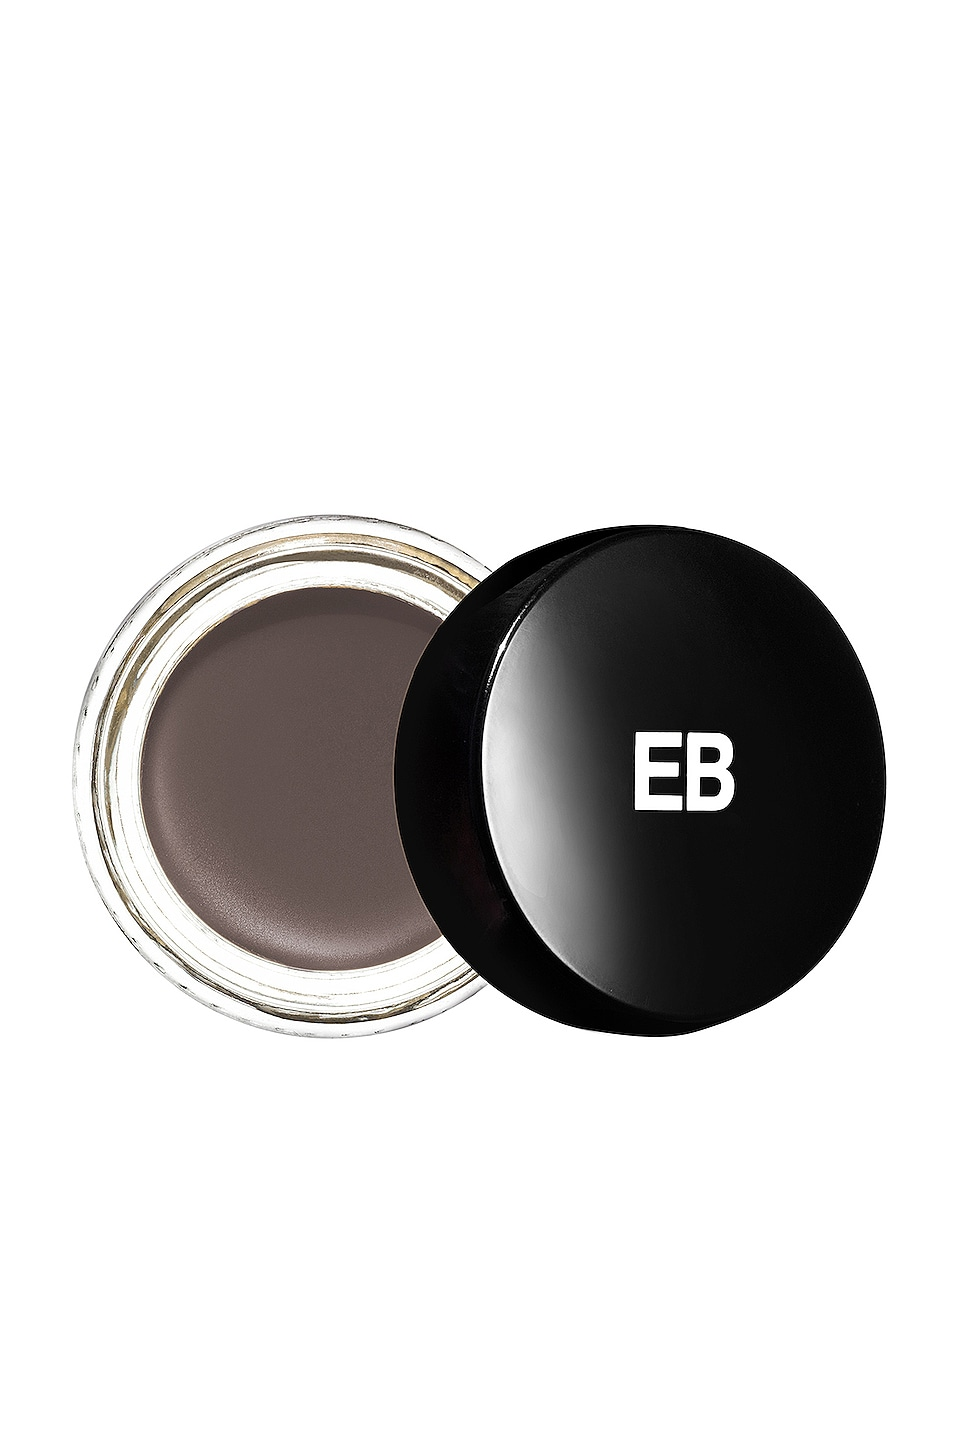 Edward Bess Big Wow Full Brow Pomade in Rich